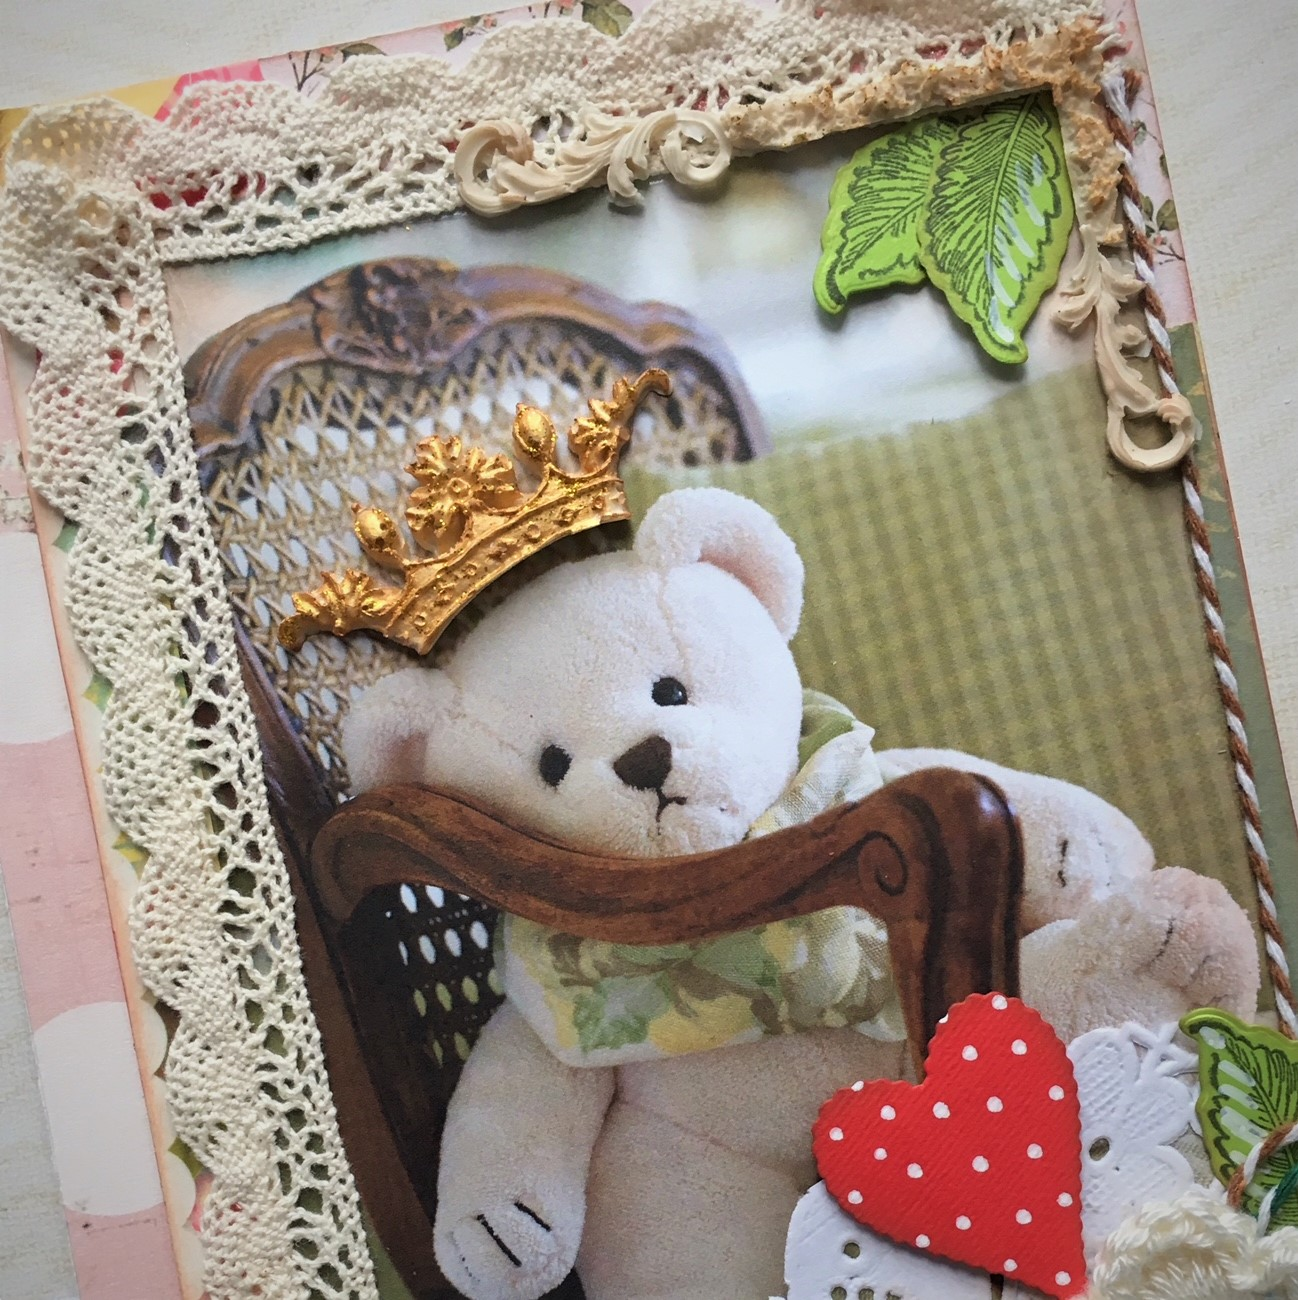 Teddy Bear scrapbook project - picture of a white teddy bear tow with resin crown, lace and red hearts with dots